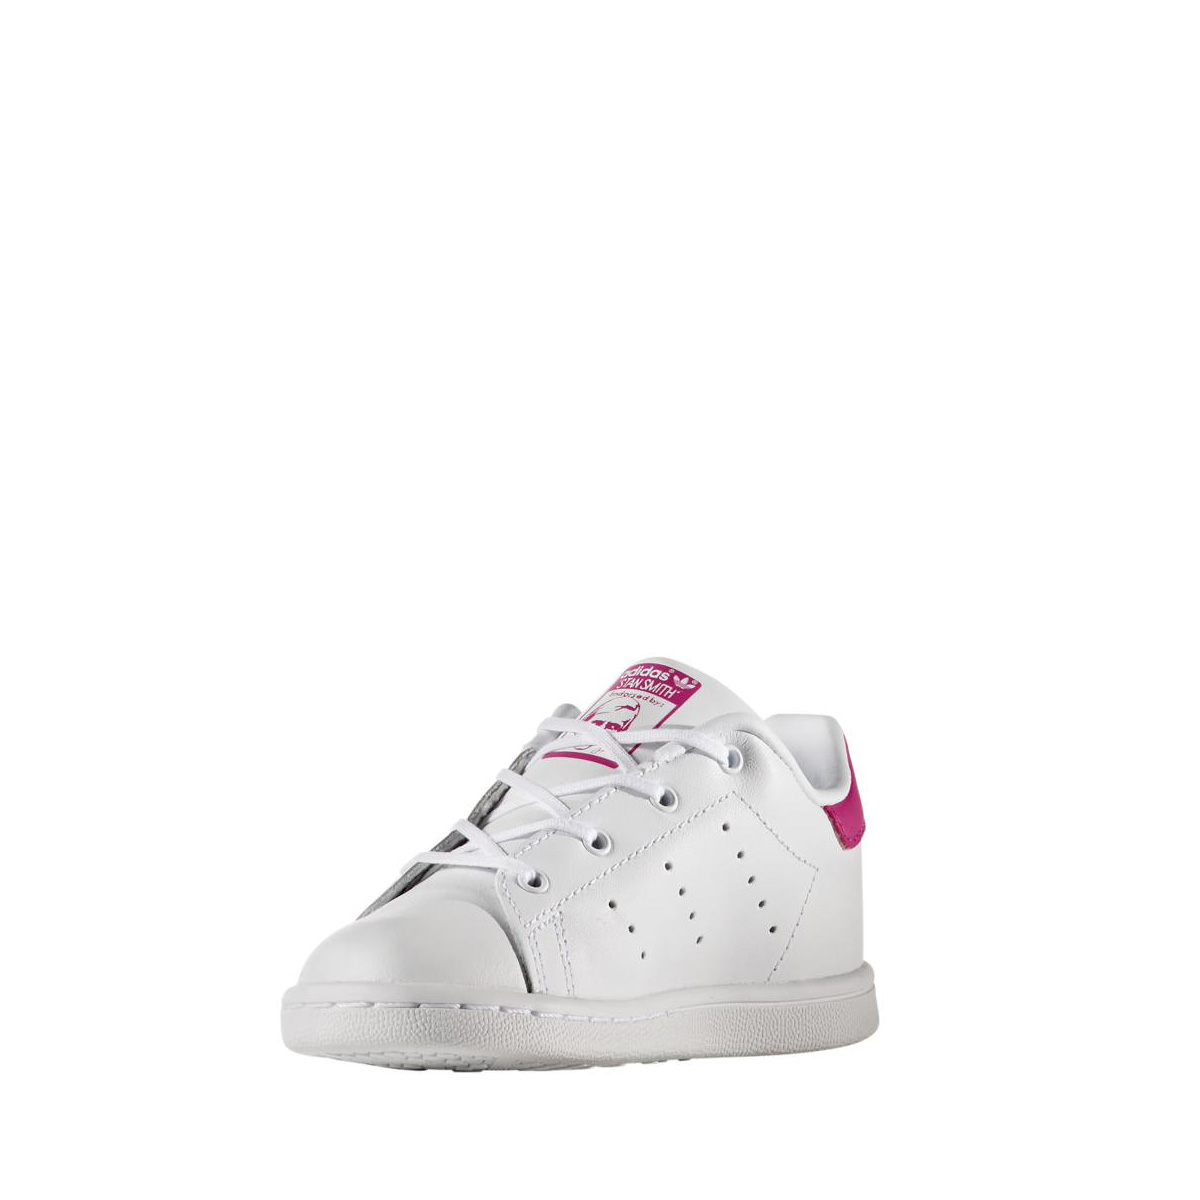 Kids' Clothing, Shoes & Accs Adidas Stan Smith Infants/toddlers Shoes White/bold Pink Bb2999 High Quality Goods Unisex Shoes